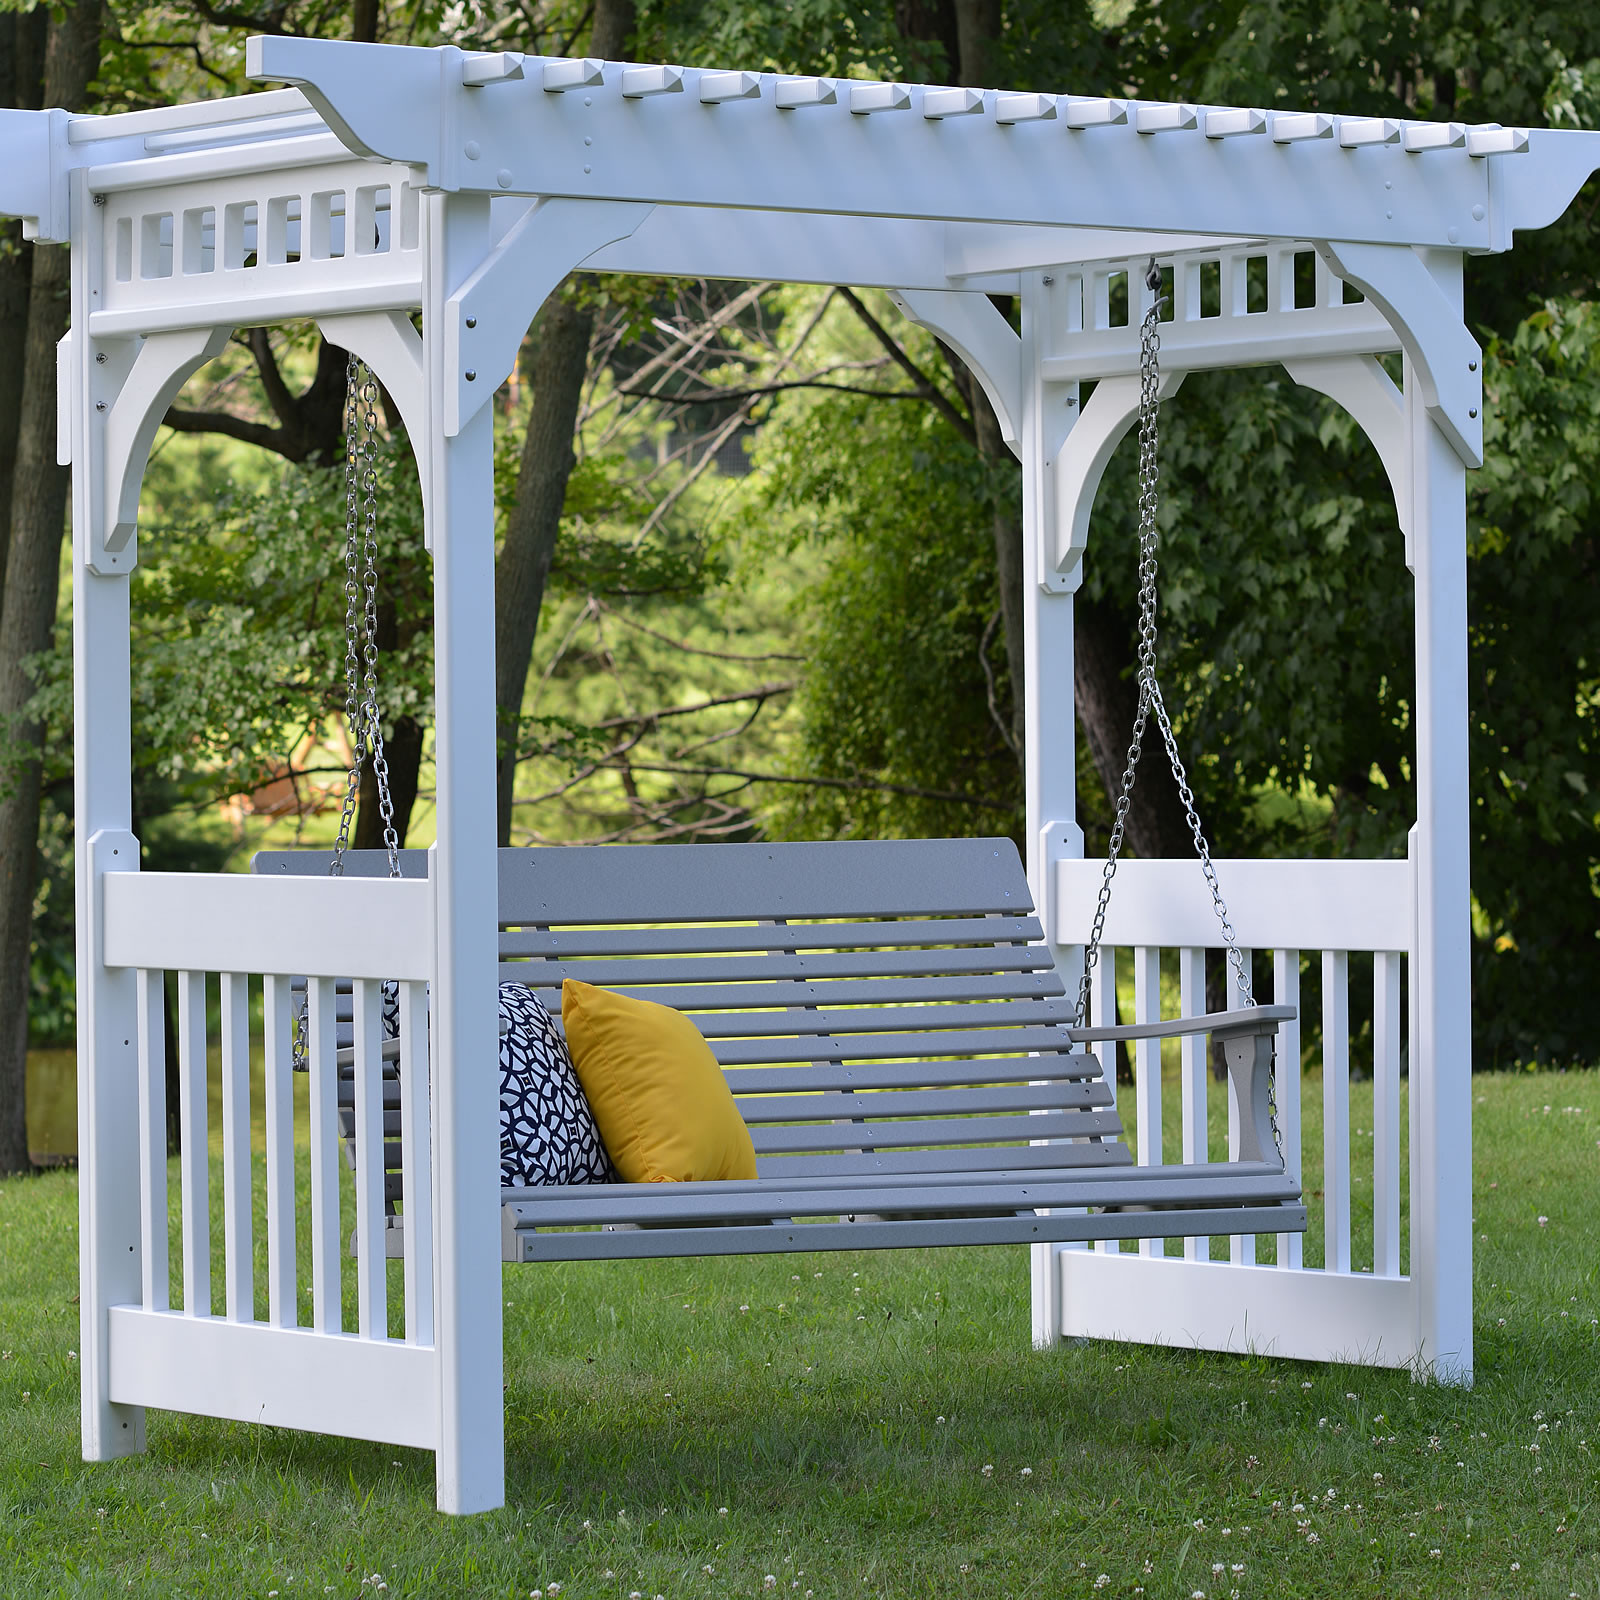 Arbor sold with ground or concrete anchor